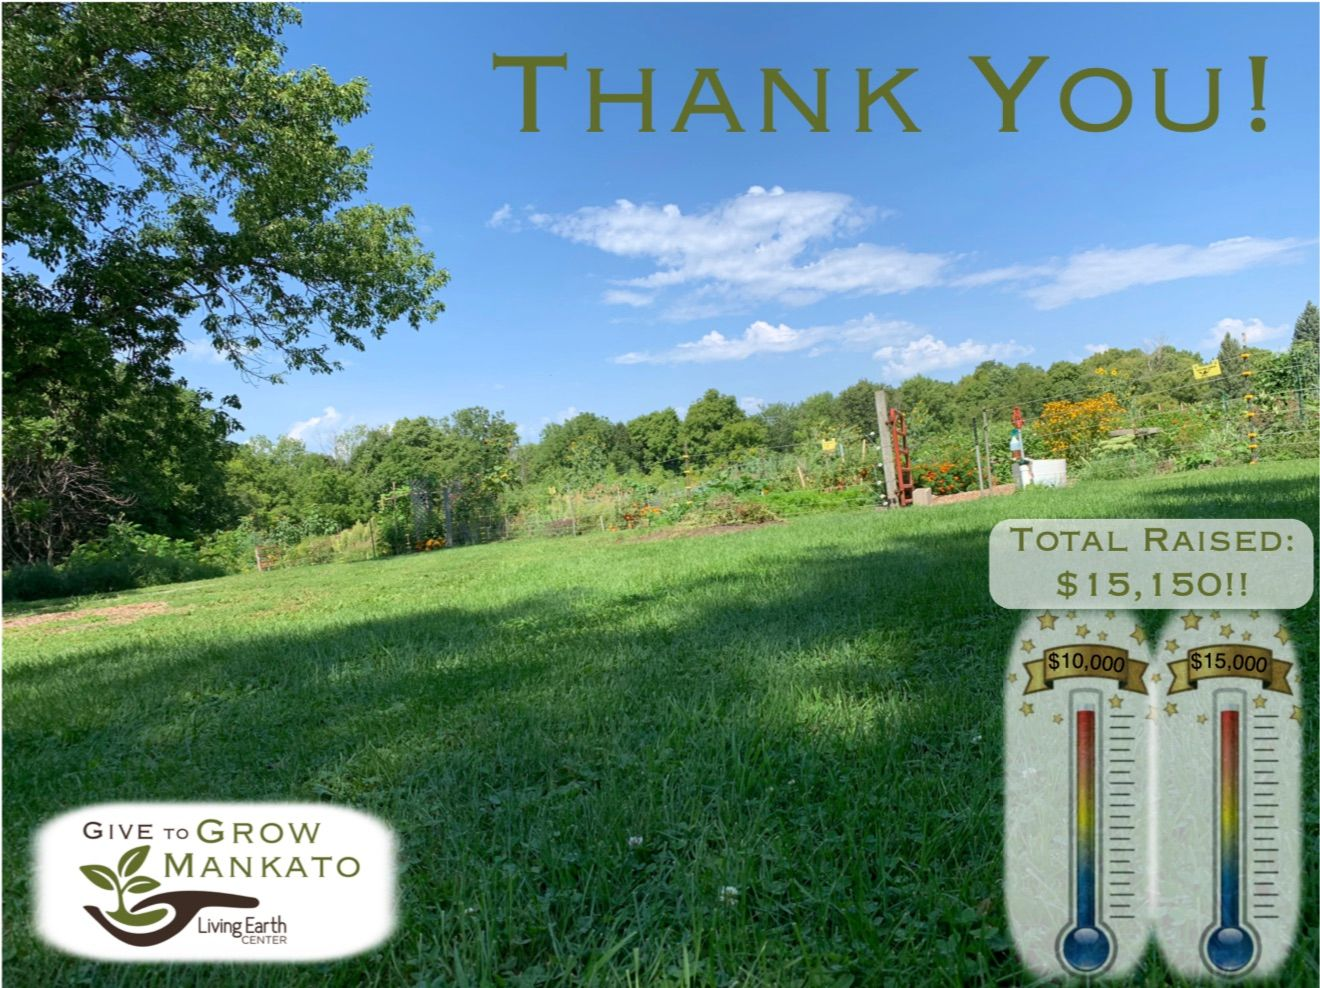 Give to Grow Mankato Wrap Up